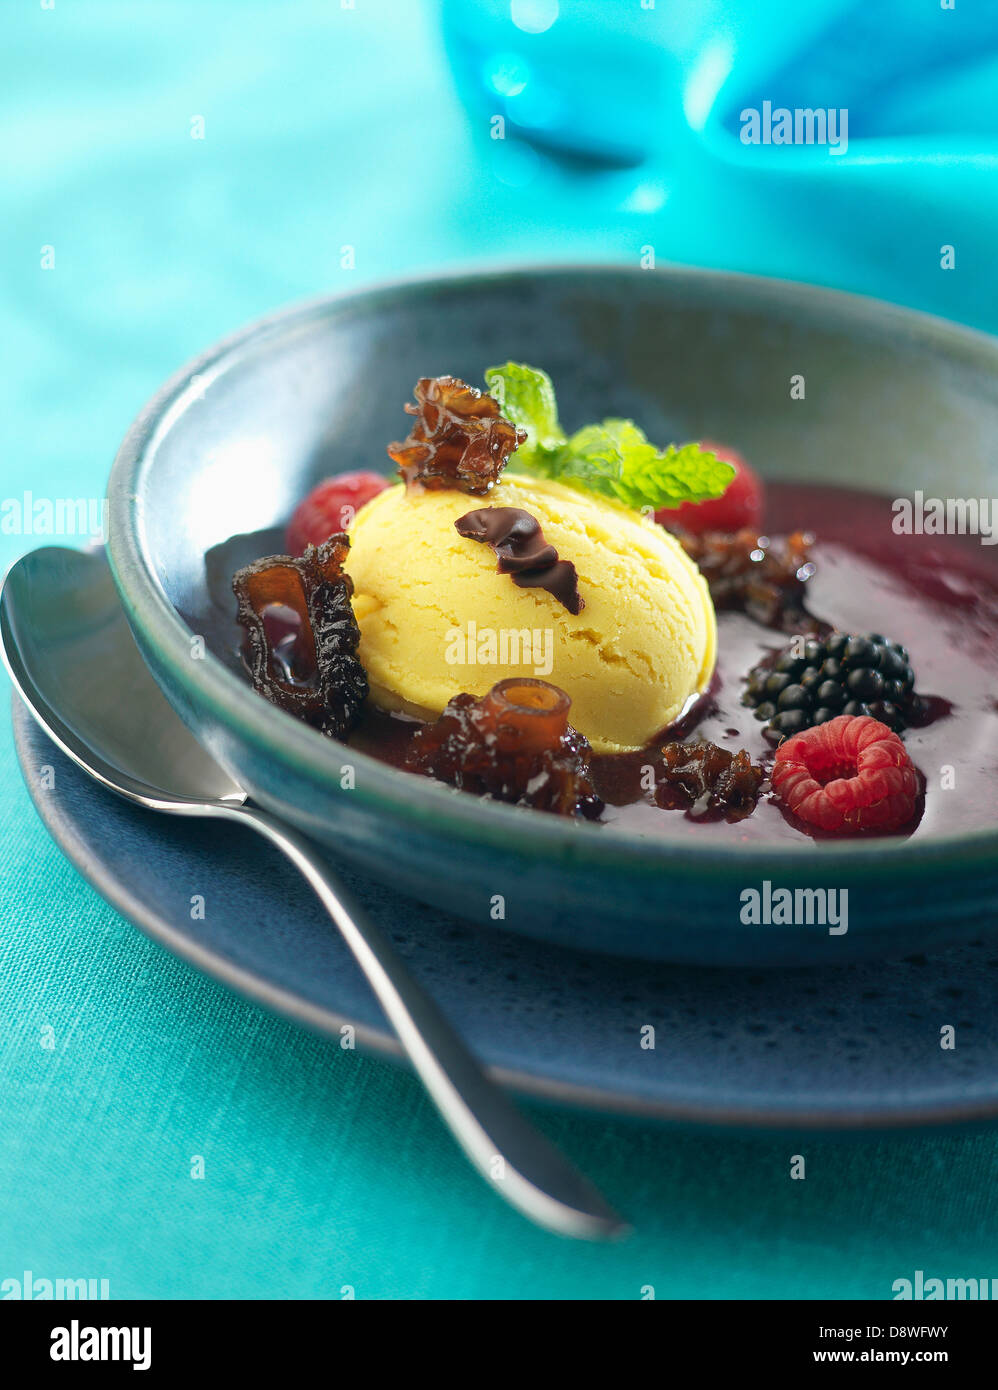 Chocolate soup with fruit and mushrooms and a scoop of ice cream - Stock Image